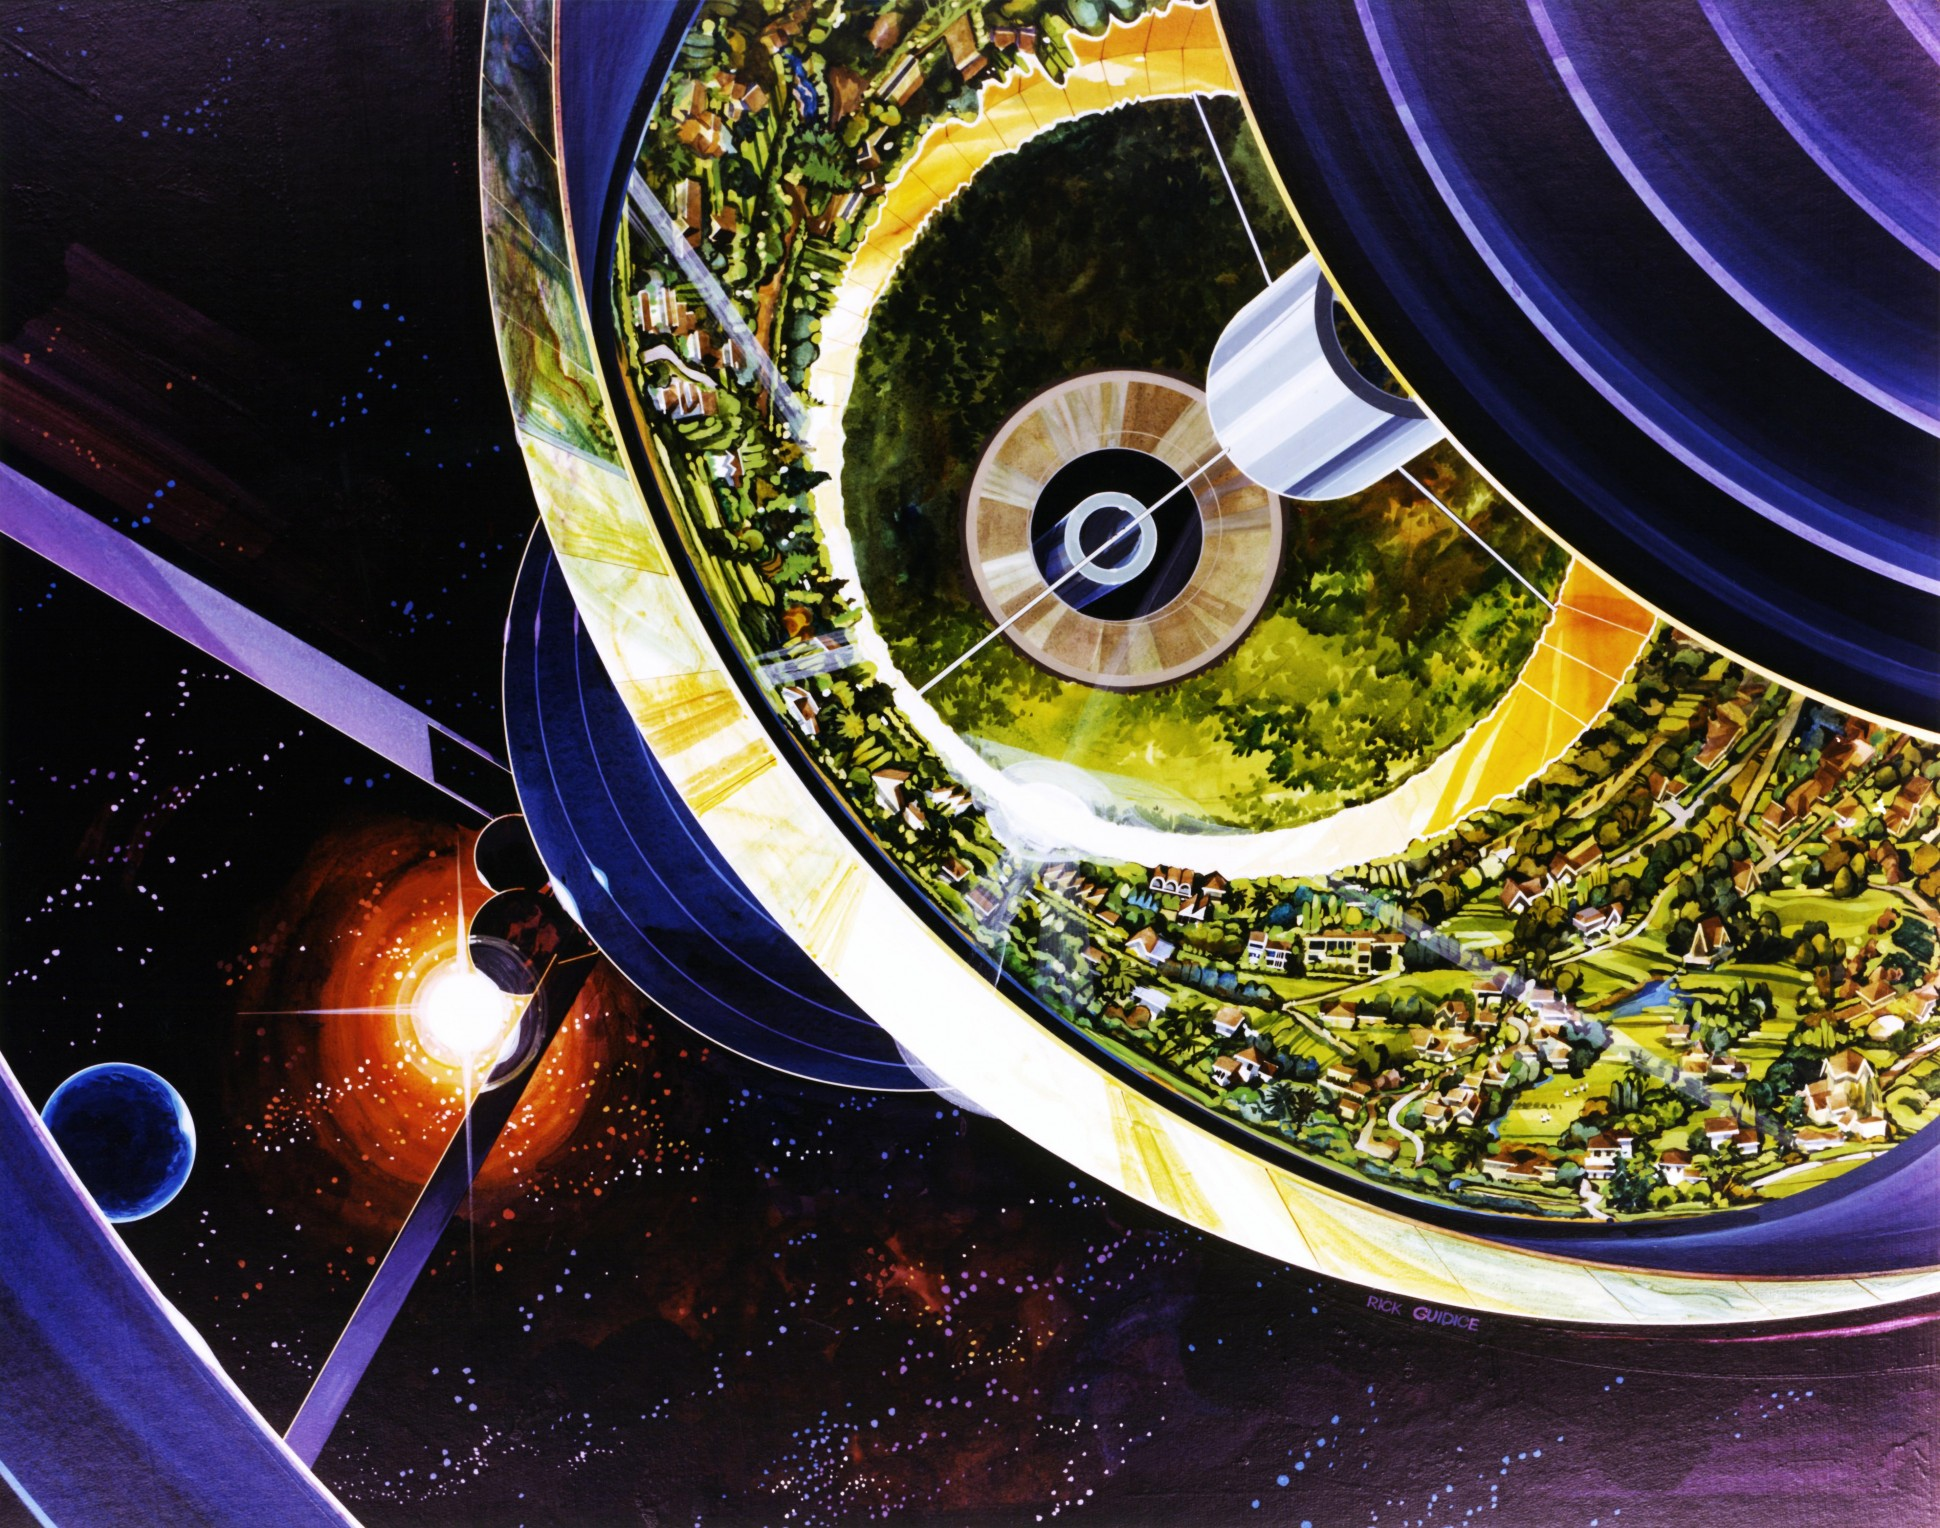 This '70s Artist Painted Our Future in Space